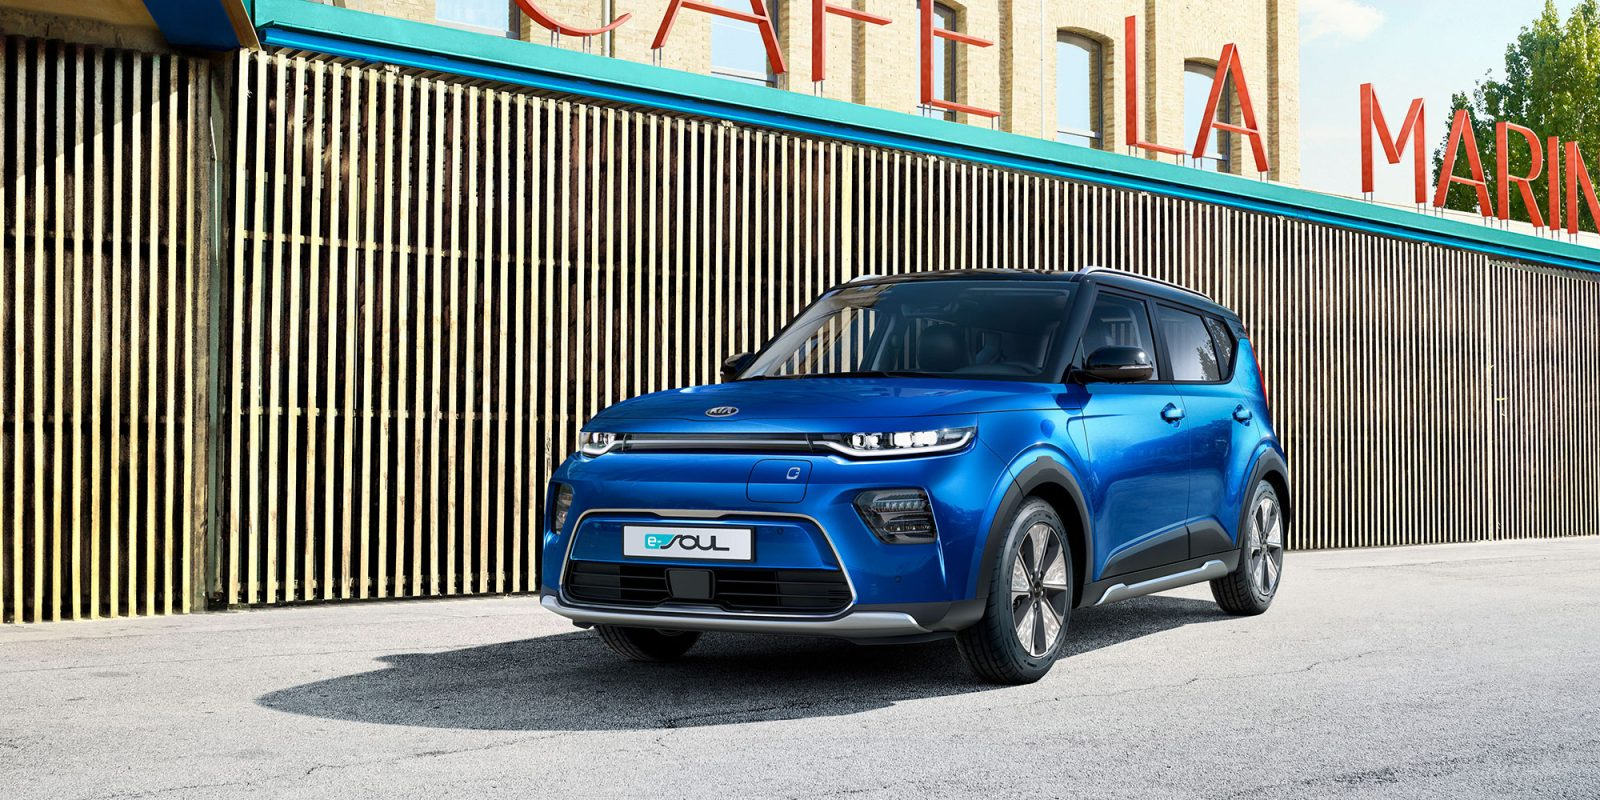 Kia Soul Ev Introduced As 2019 E In Europe With 280 Mile Wltp Range